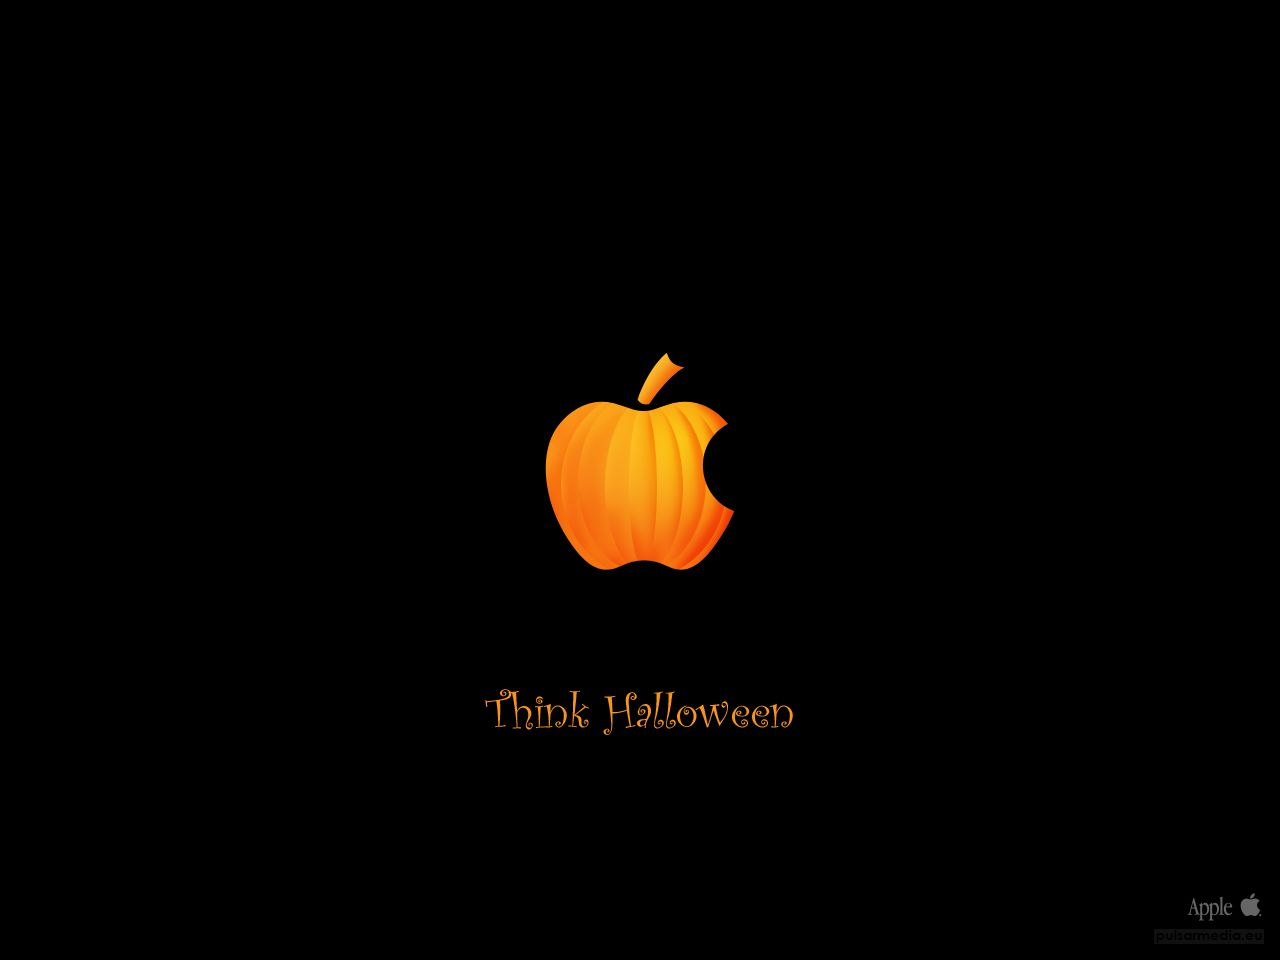 Download Wallpaper Macbook Halloween - f4249c1ff73e8d89847192f9a9919eb9  Trends_67726.jpg